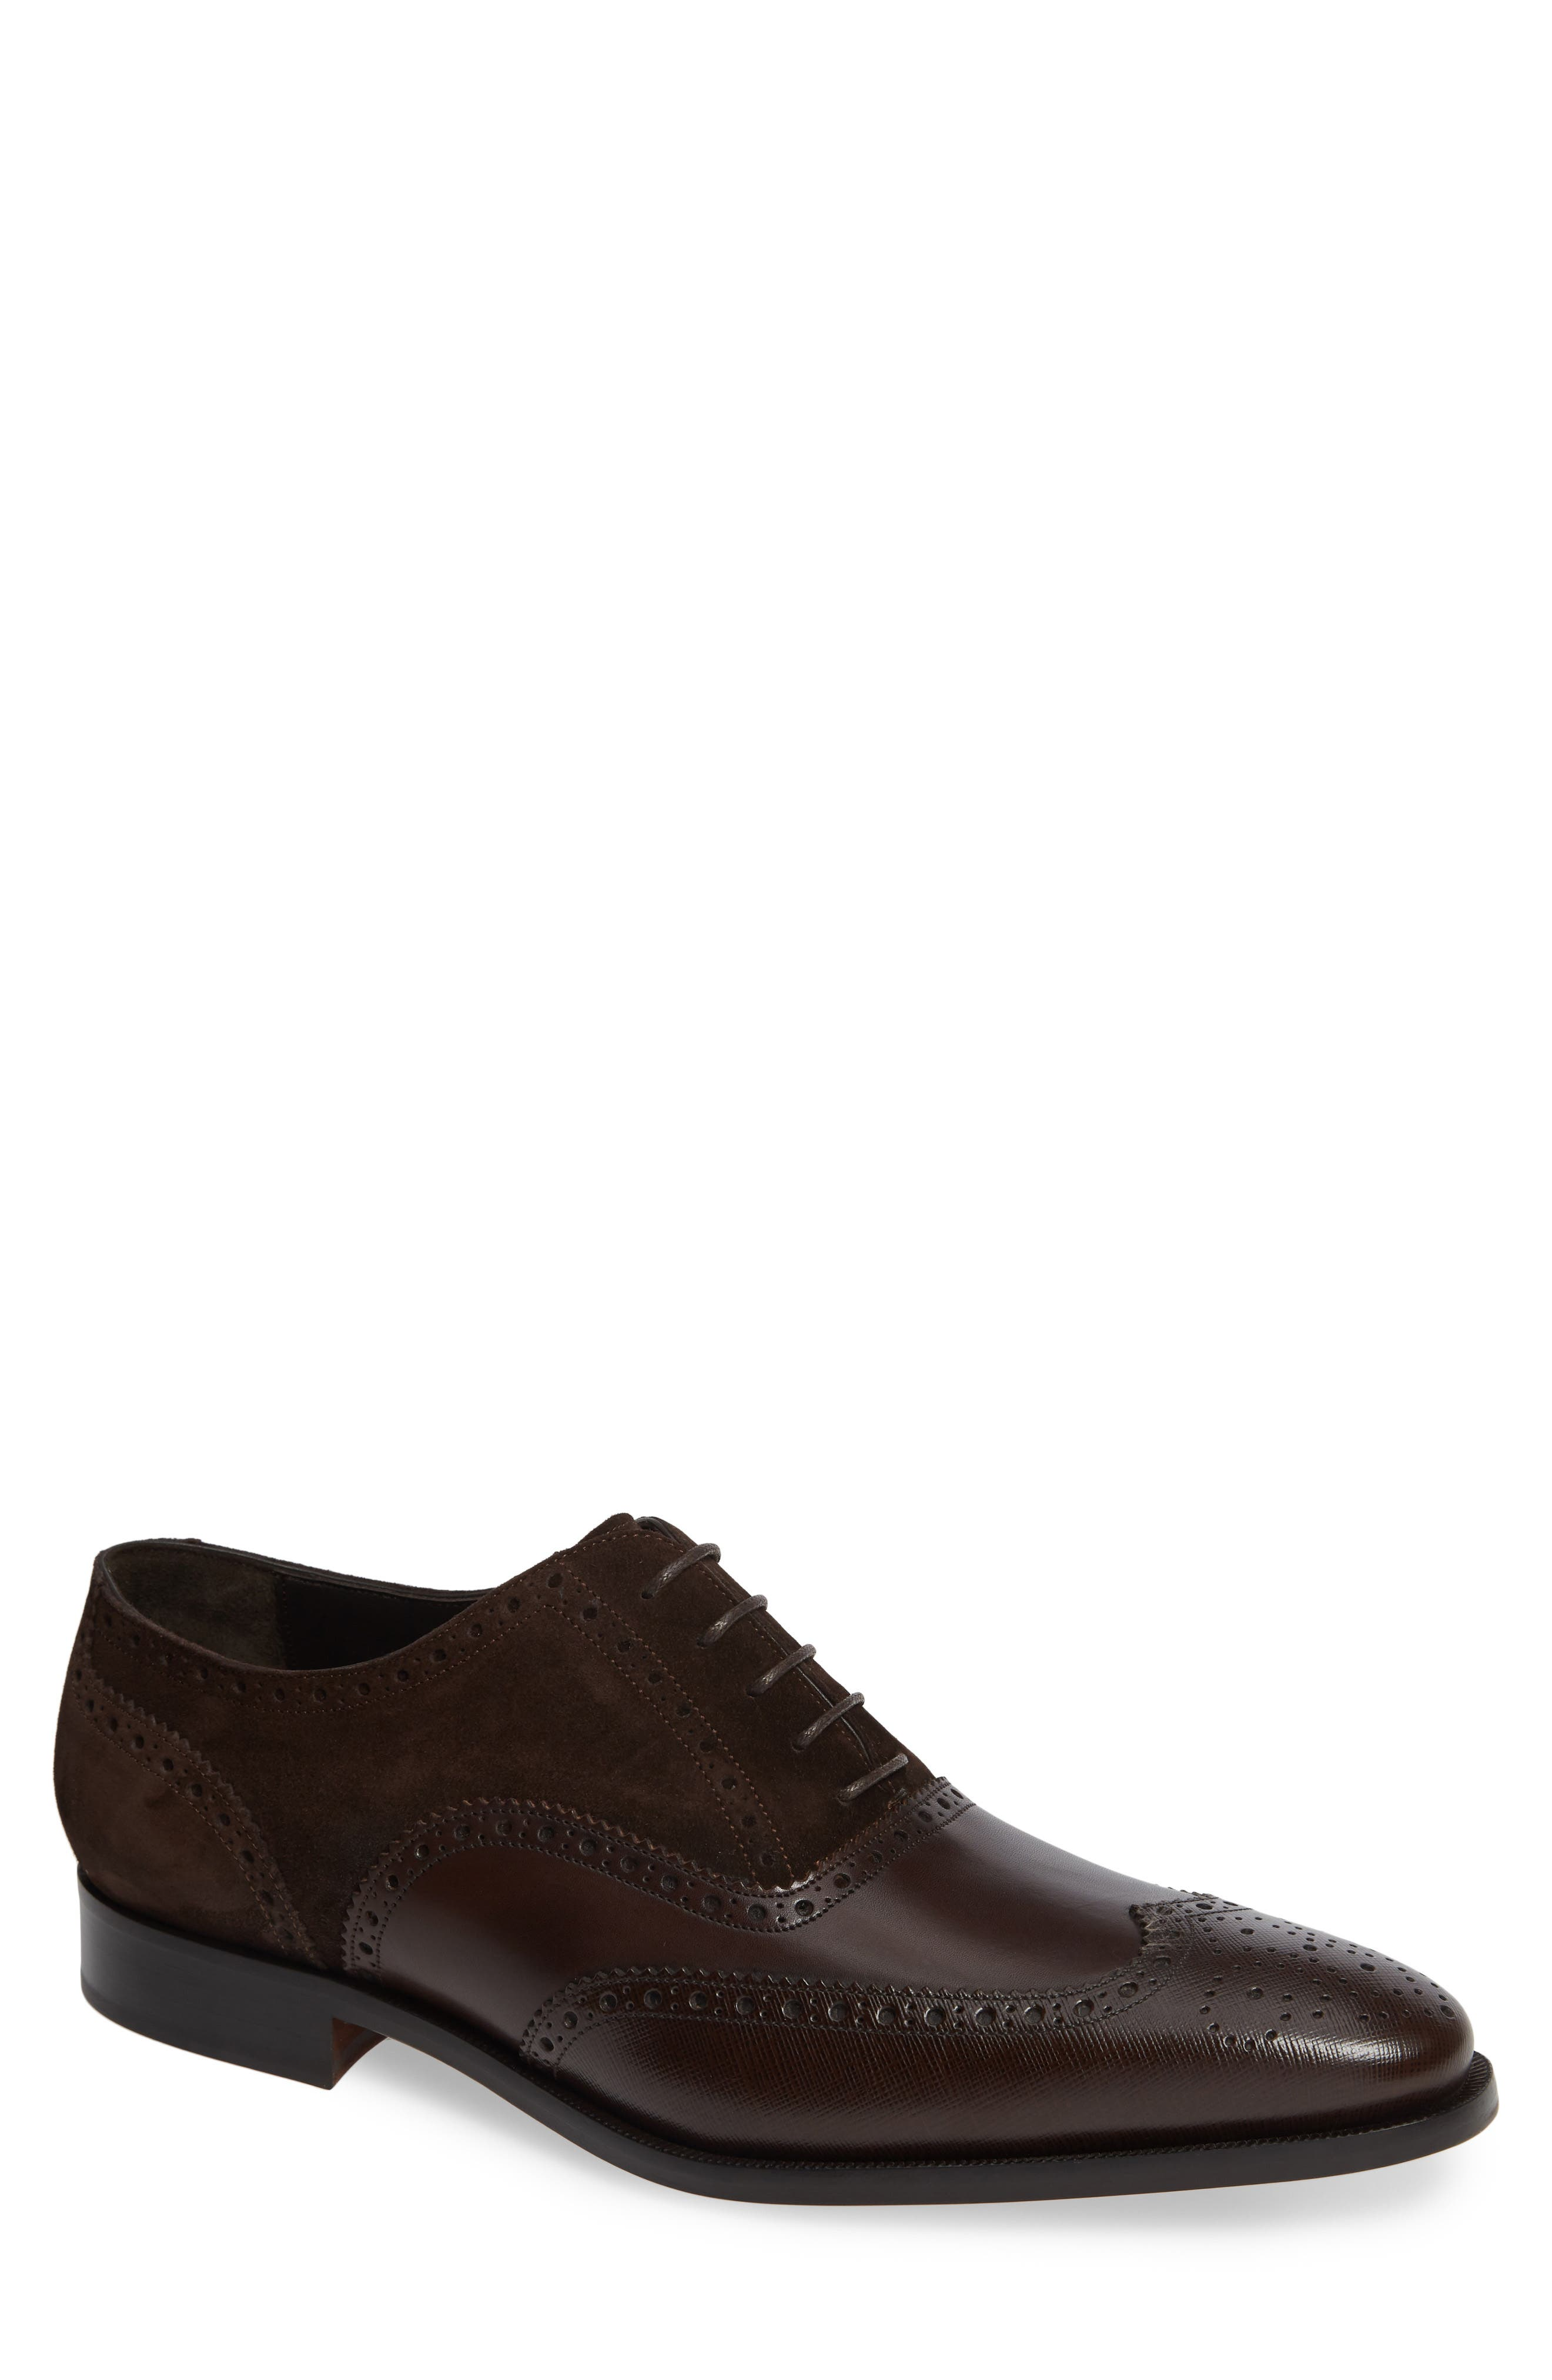 Cologne Wingtip,                         Main,                         color, BROWN SUEDE/ LEATHER